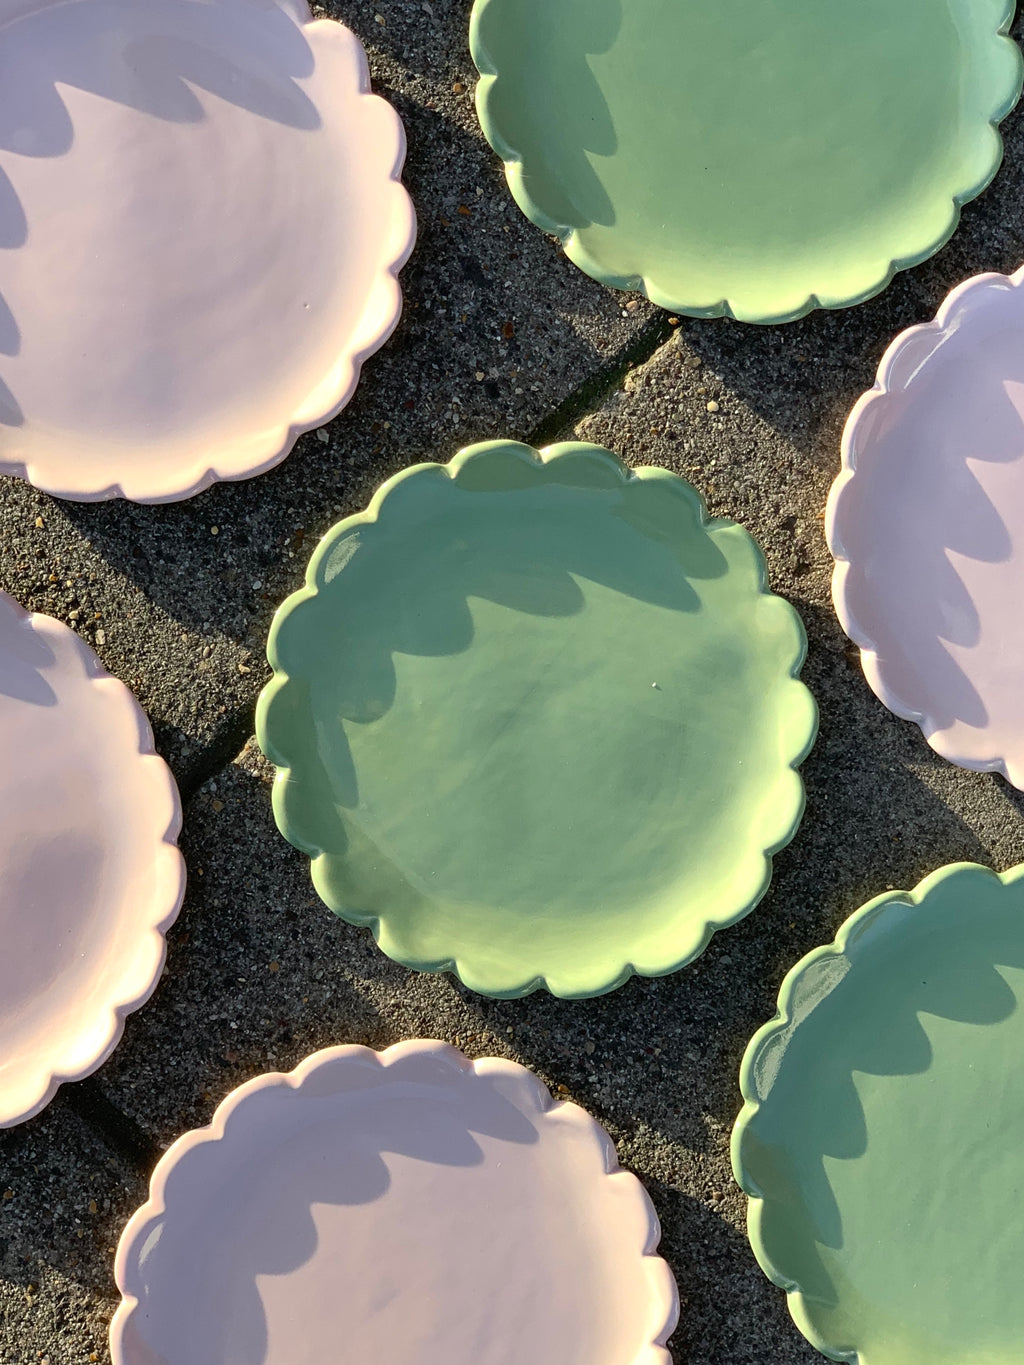 Scalloped Dessert Plates by Karin Hossack